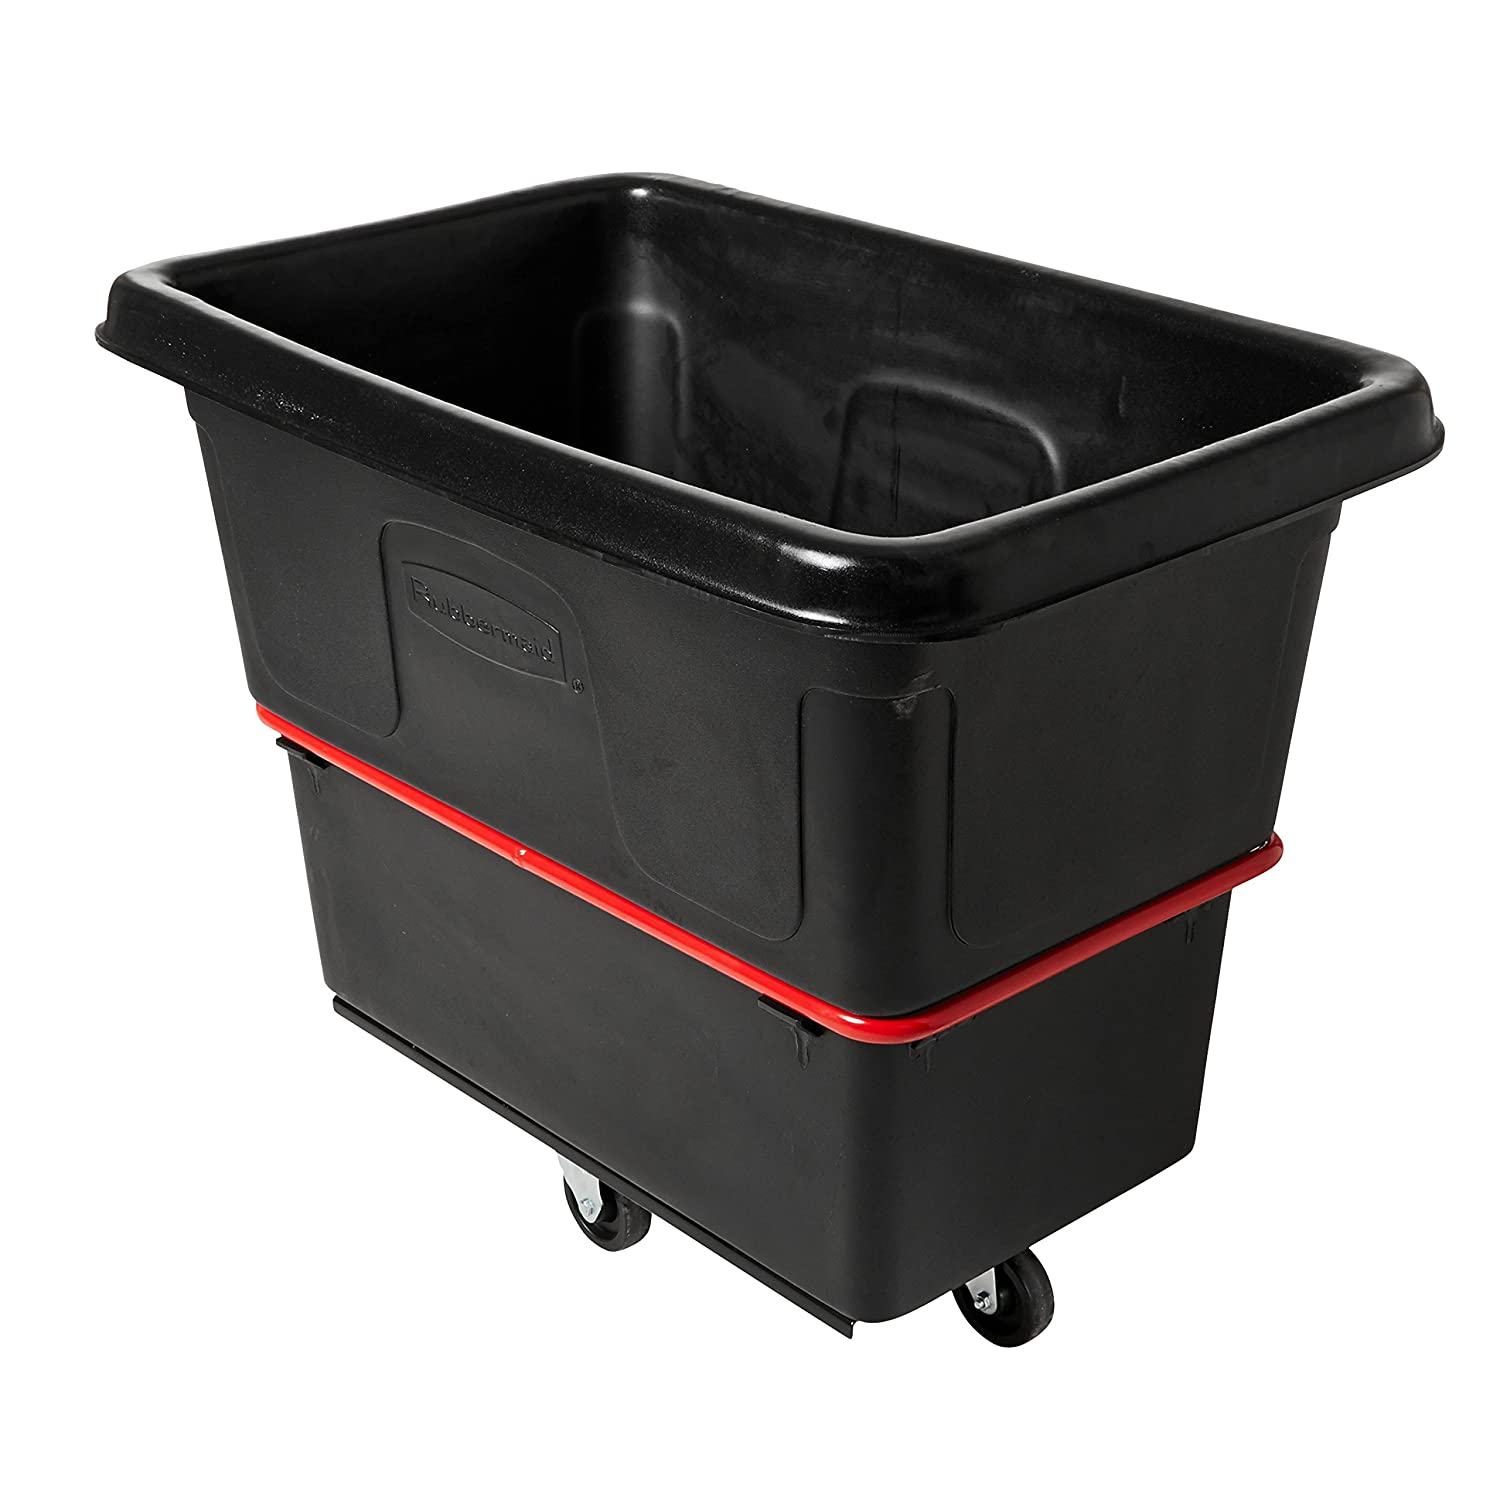 Amazon.com: Rubbermaid Commercial Cube camión, 9,6 almud ...